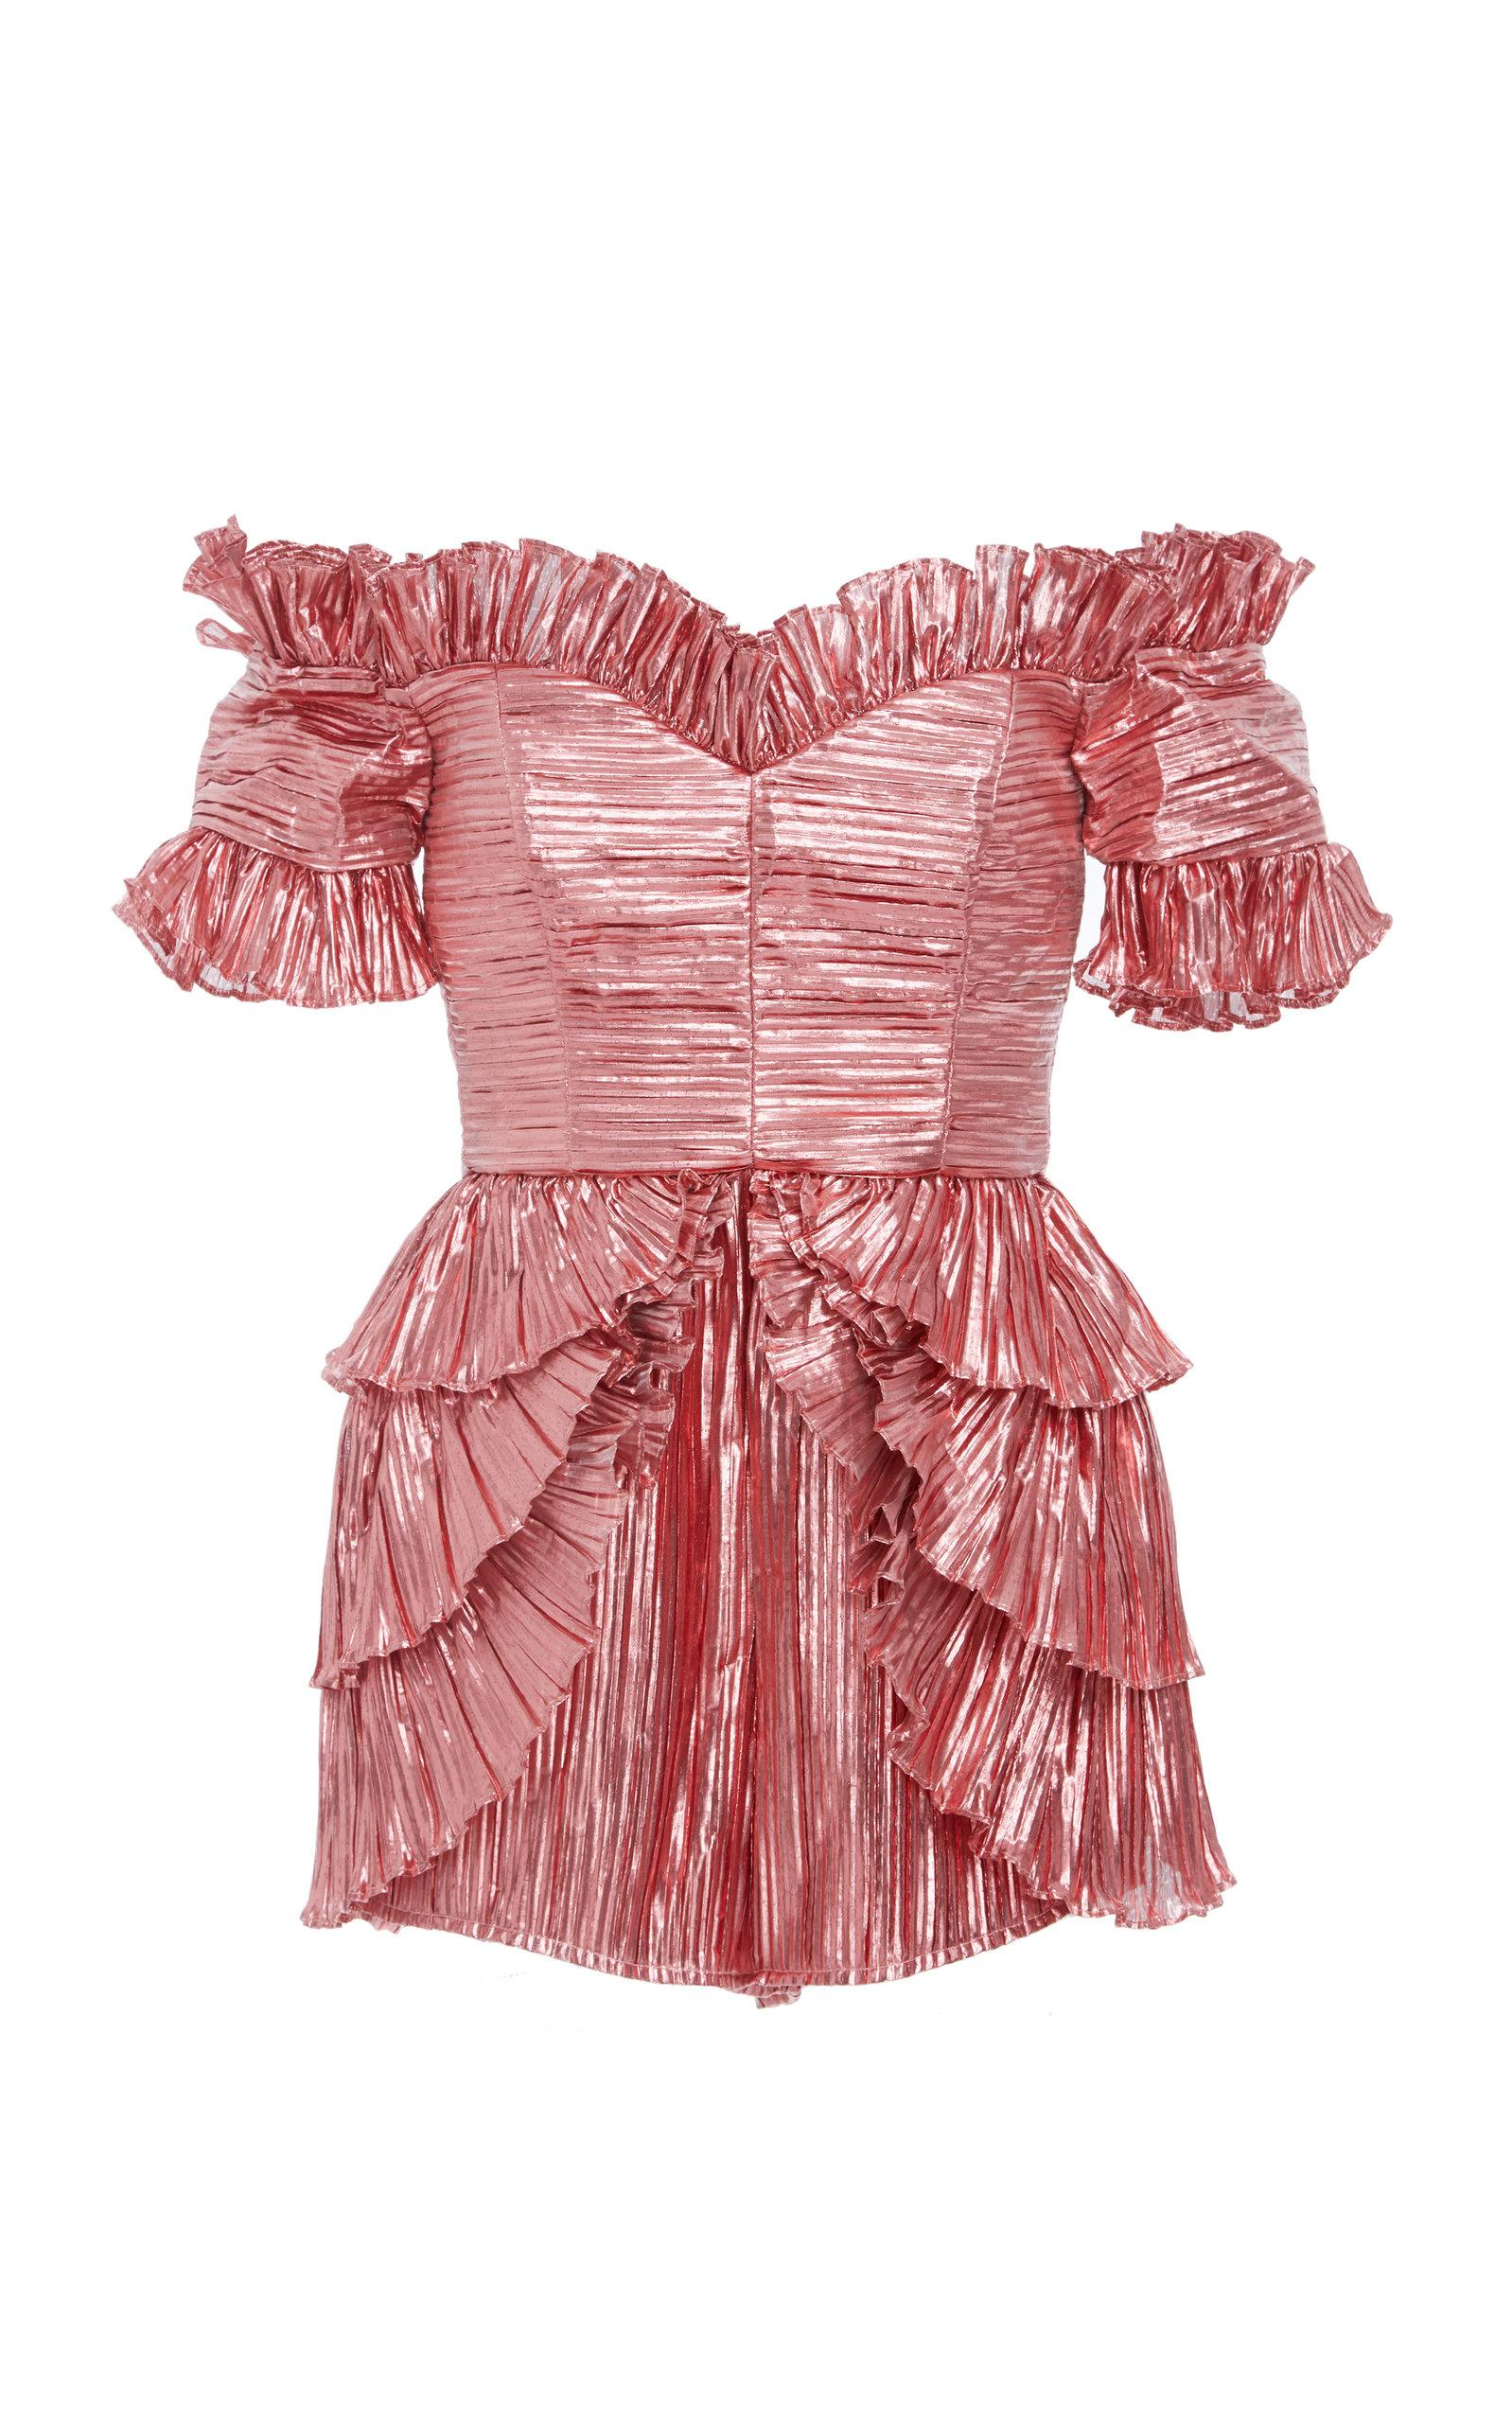 Alice Mccall Wasn't Born To Follow Playsuit In Pink